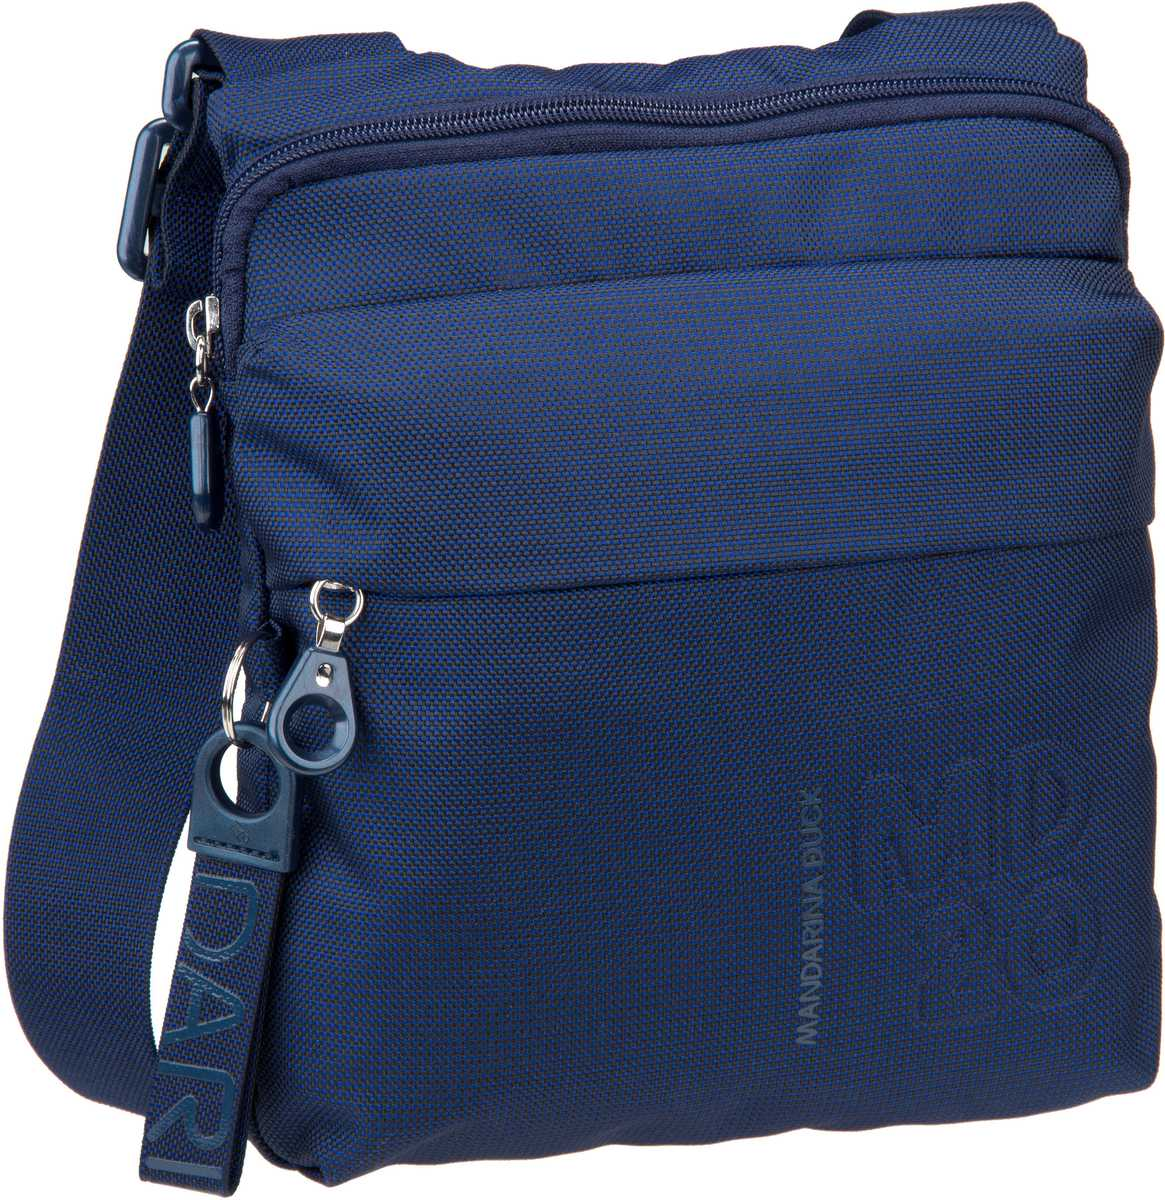 Umhängetasche MD20 Small Crossover Bag QMT04 Dress Blue